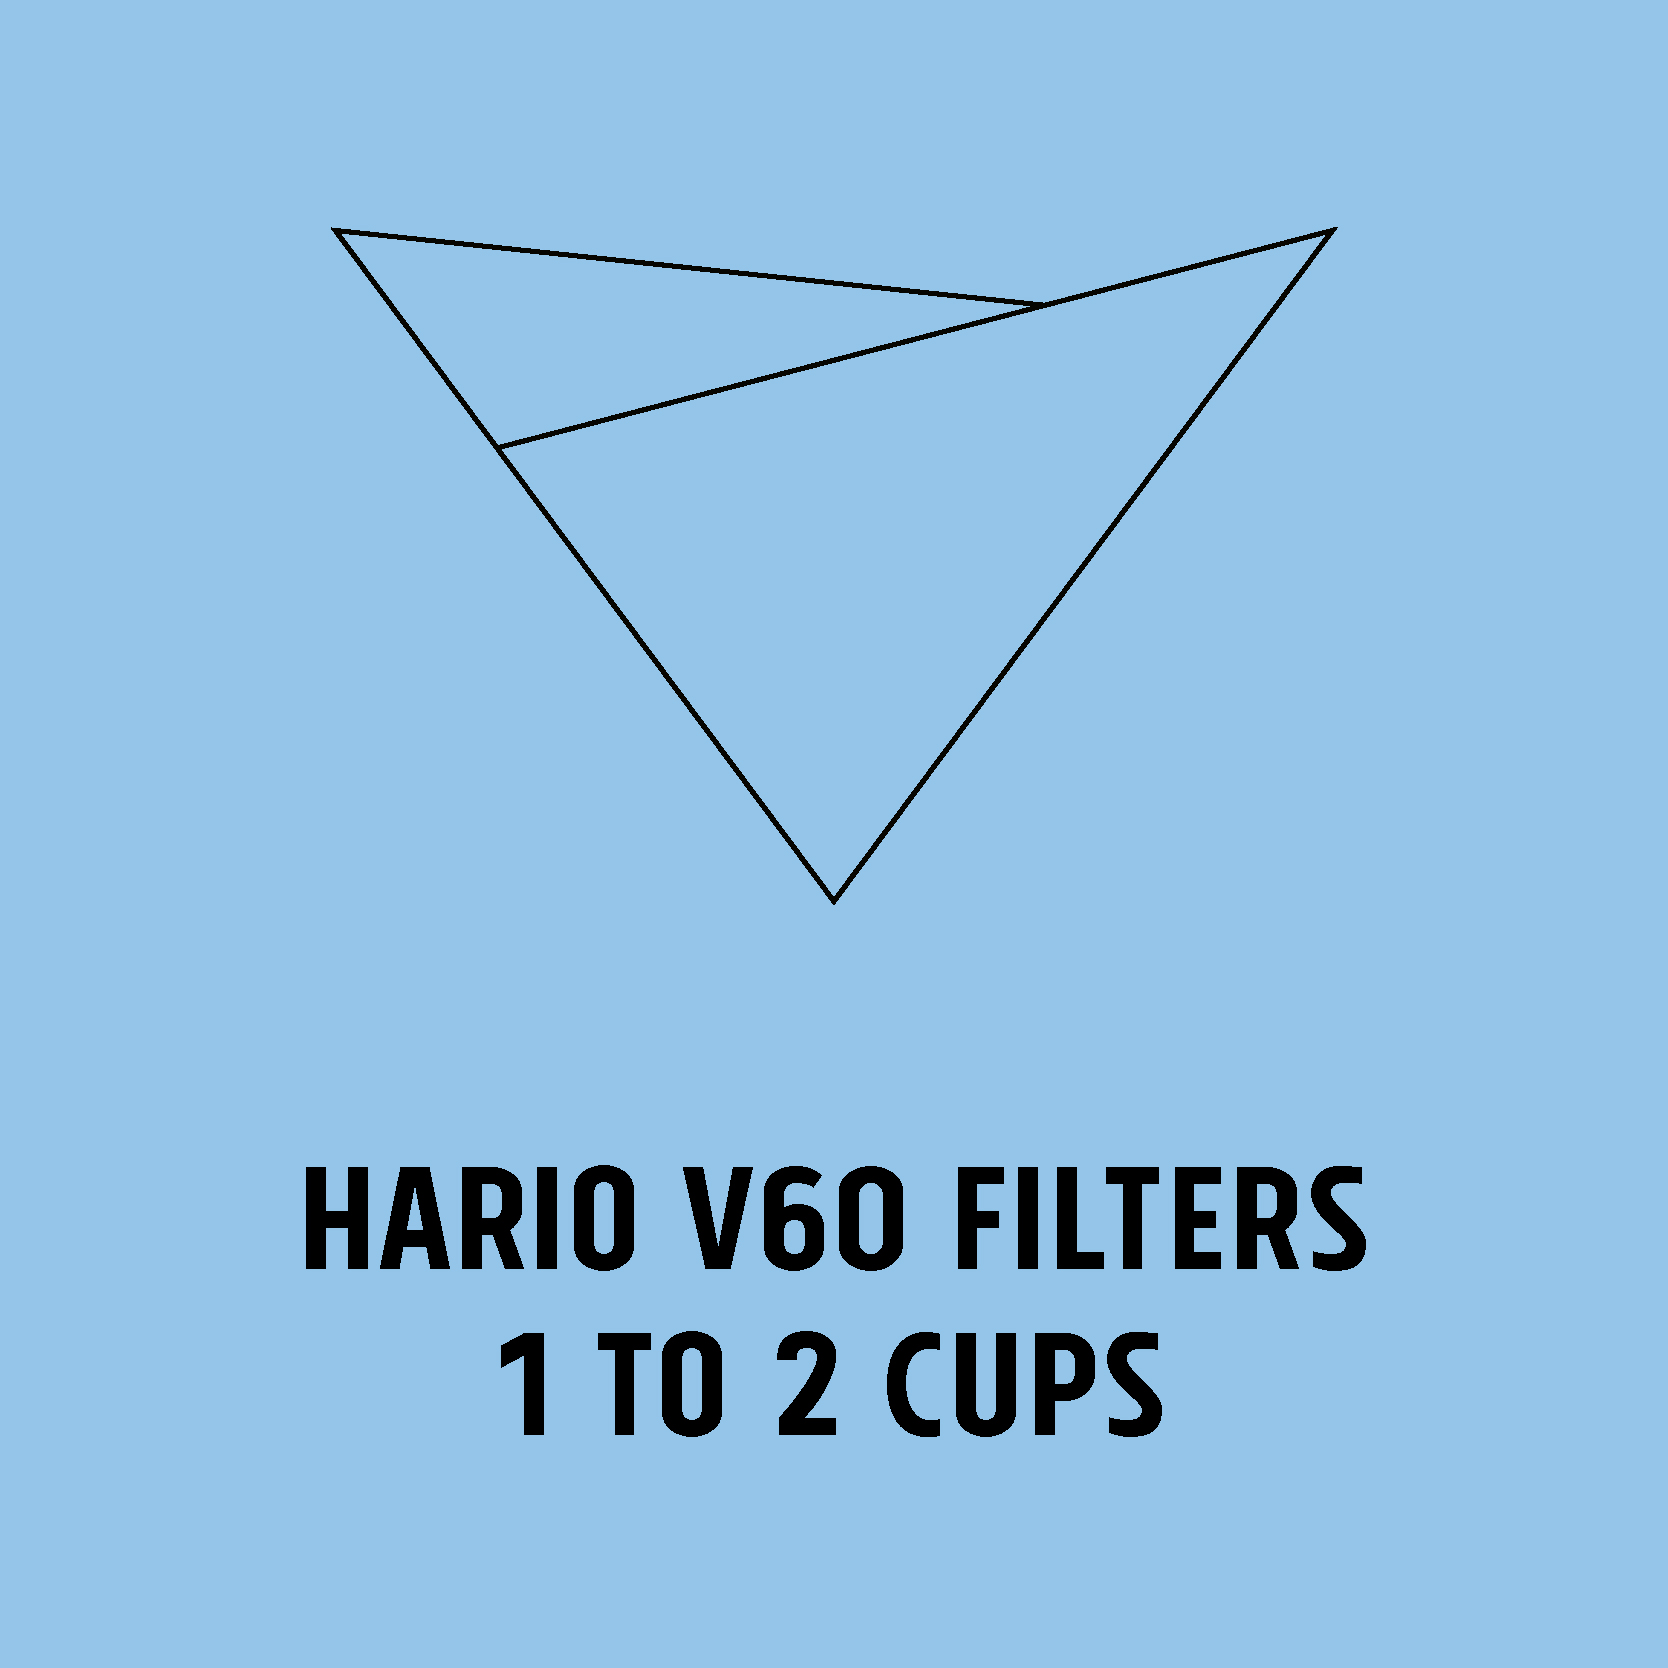 Hario V60 Filters - 1 to 2 cups